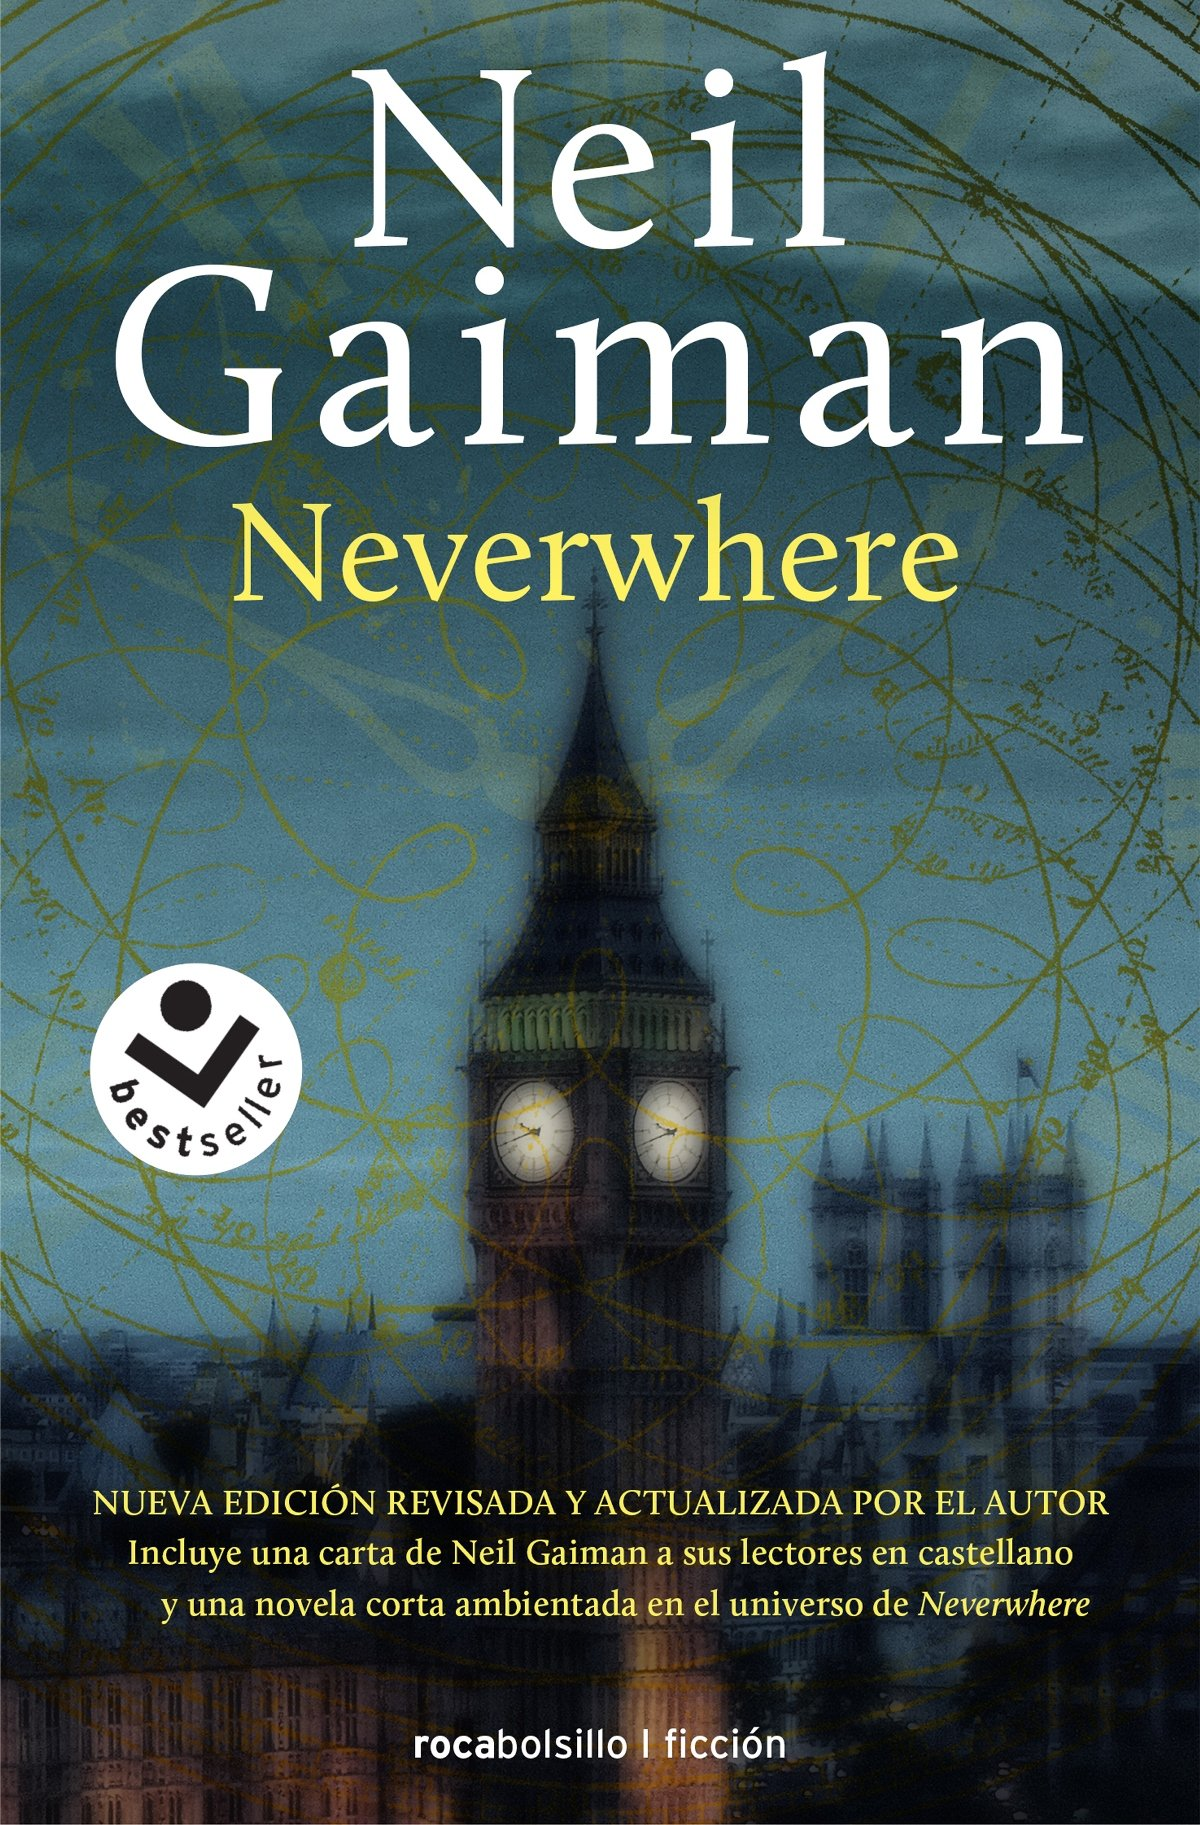 Neverwhere (Best seller / Ficción) Tapa blanda – 11 sep 2017 Neil Gaiman Mónica Faerna Roca Bolsillo 8416240884